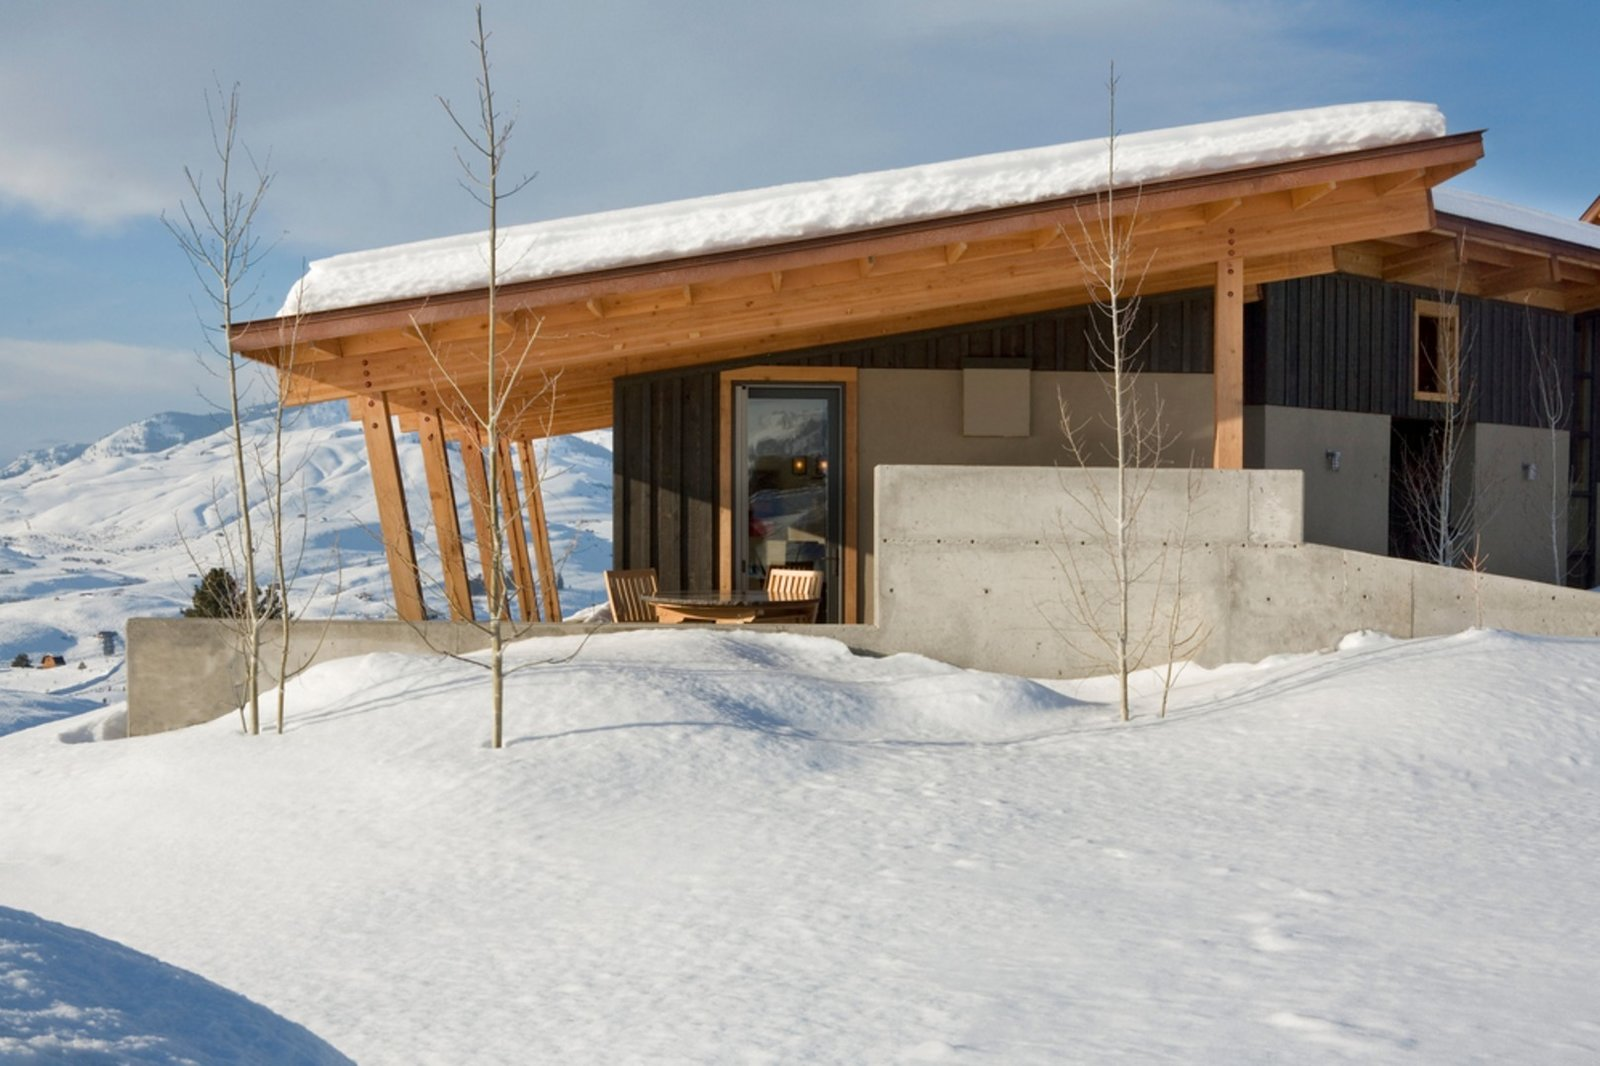 Stud Horse Mountain home in Methow Valley, WA; Architects Prentiss Balance Wickline (PBW) Architects; Photo courtesy of PBW Architects   Cabin Fever